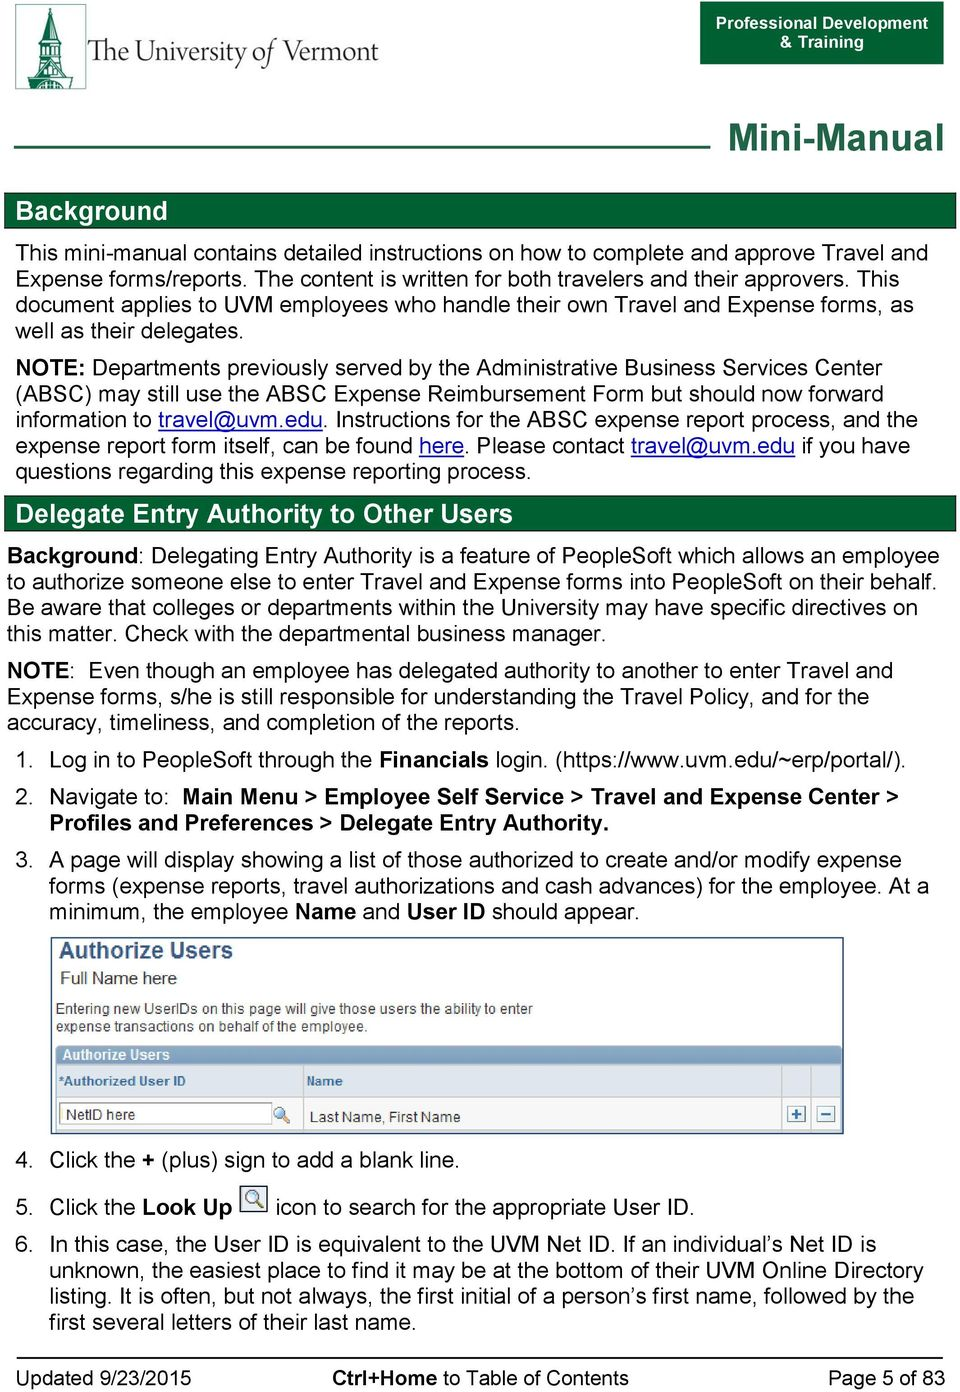 TRAVEL AND EXPENSE CENTER REPORTS PDF Free Download